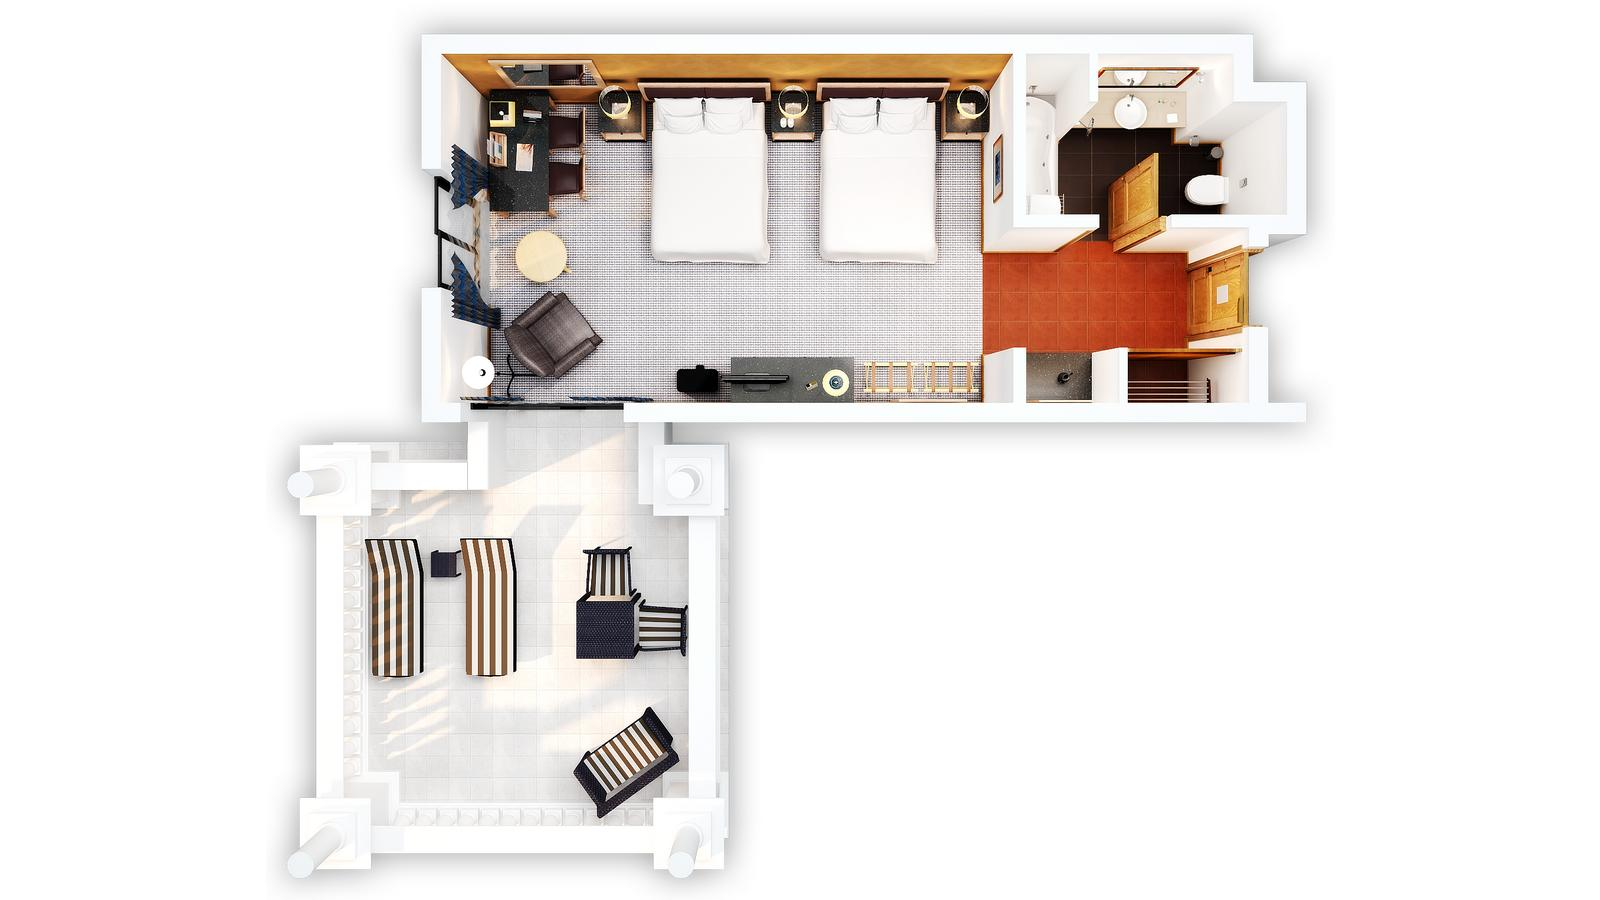 Tower Room Floor Plan